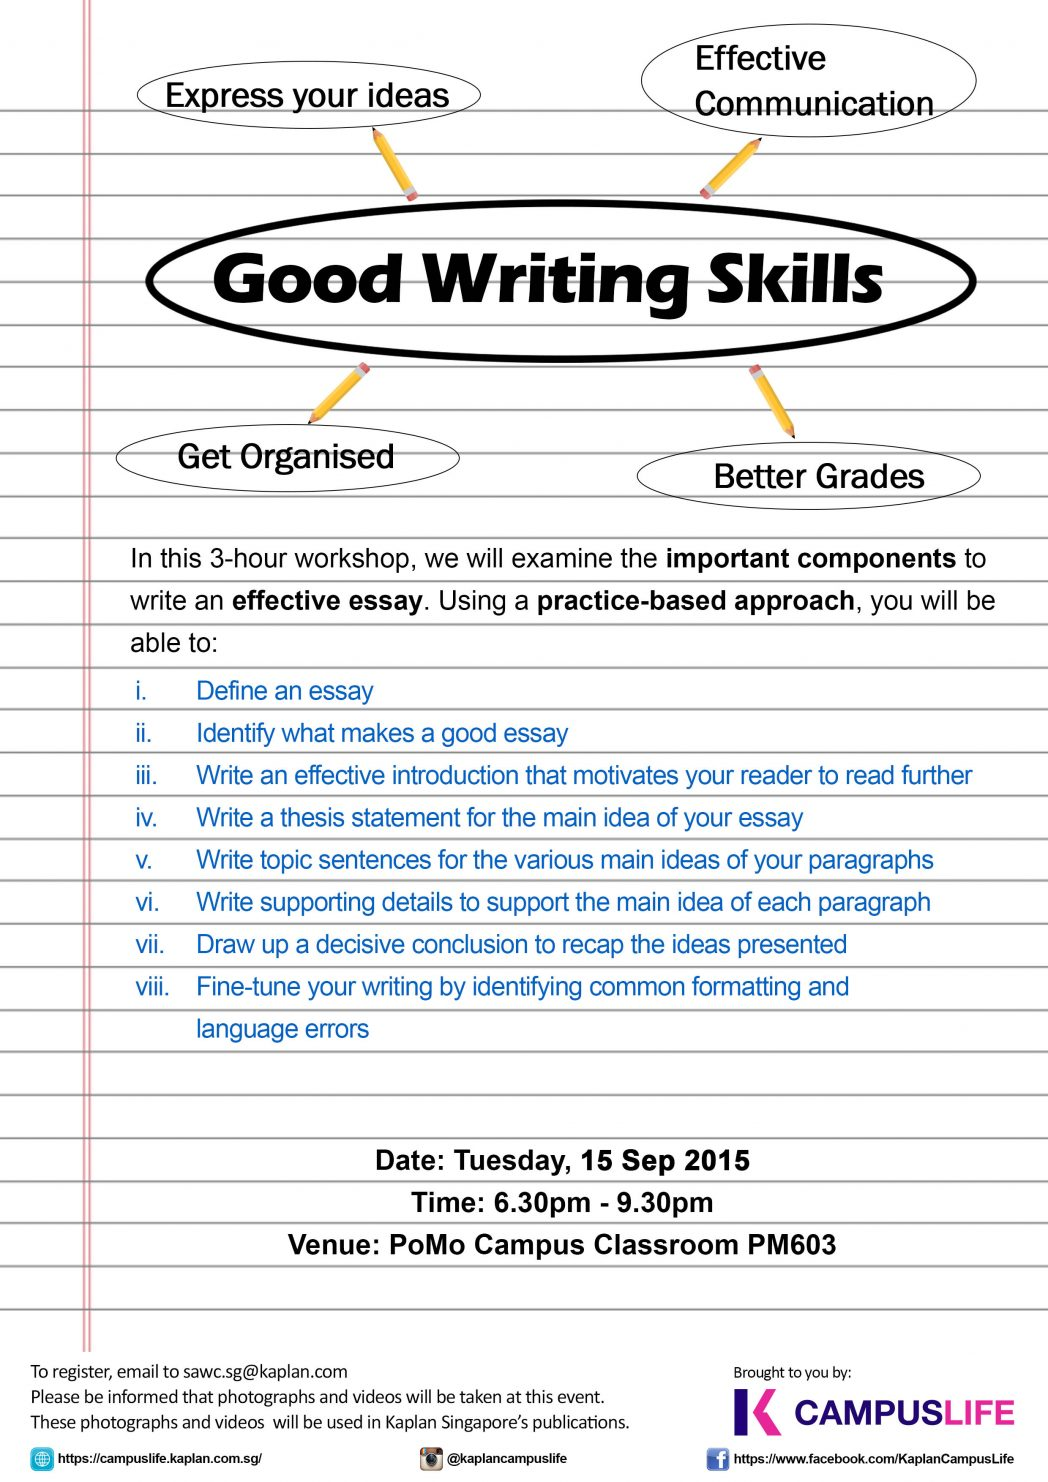 005 Essay Writing Skills Tips On Good Narrative List Of